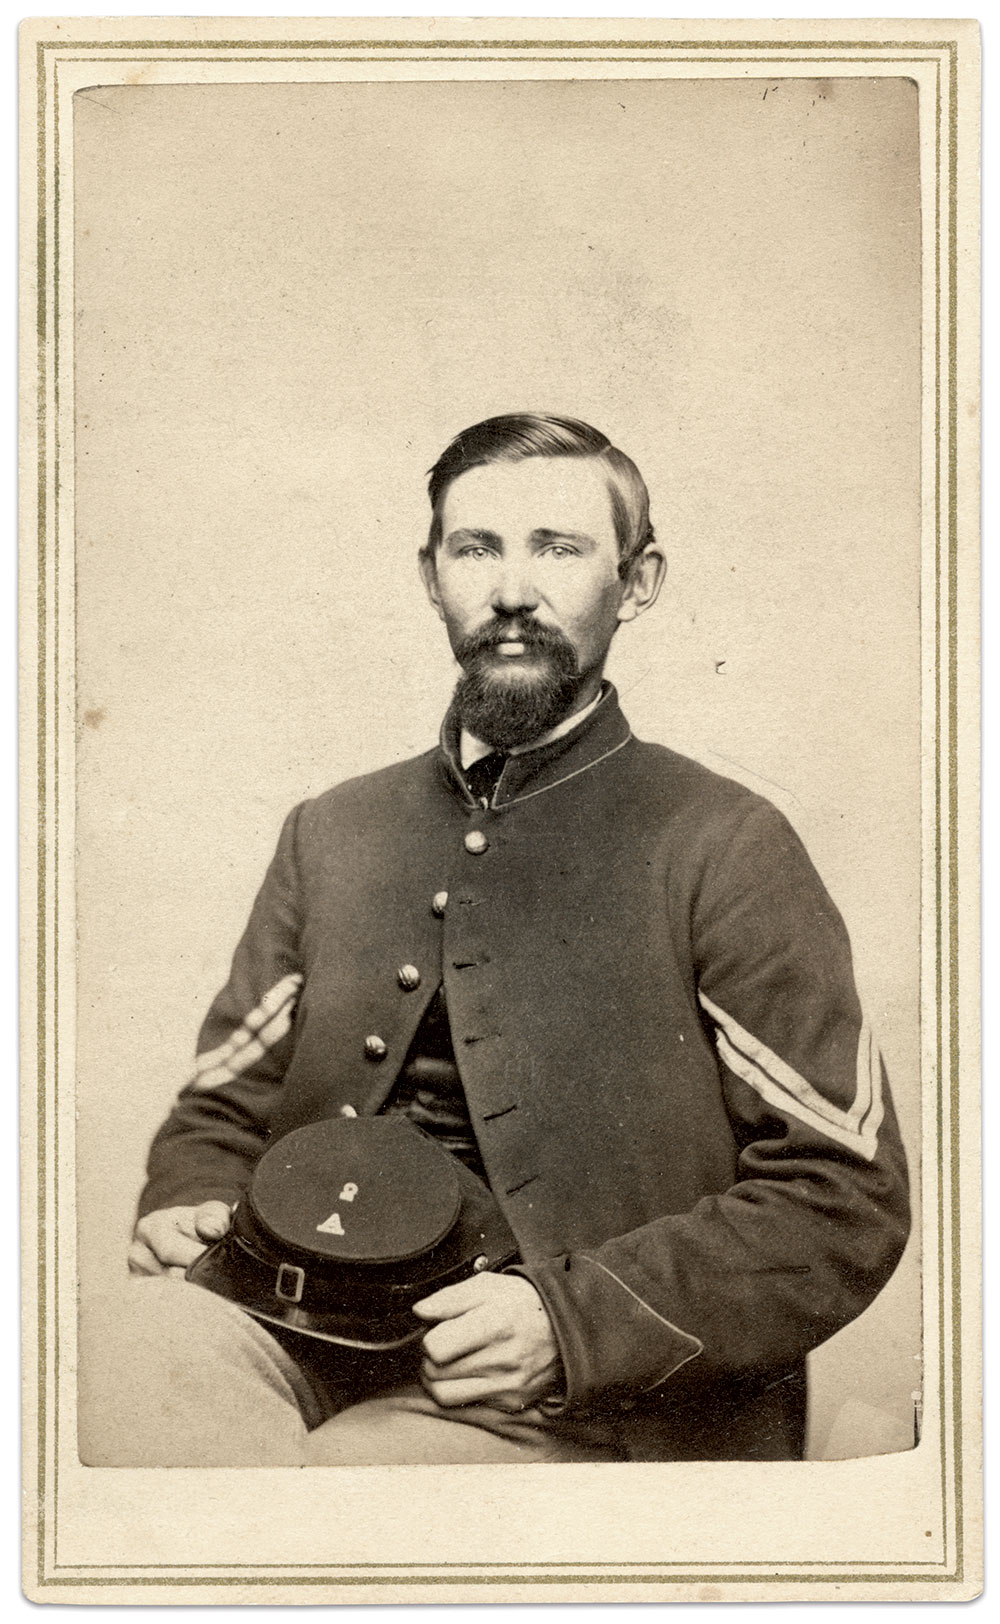 Photographed circa 1864-65, this unidentified corporal of Company A, 2nd New Hampshire Infantry, has simply has the metal letters 2 and A on his cap top. Carte de visite by French & Sawyer, Keene, N.H. Ron Field Collection.